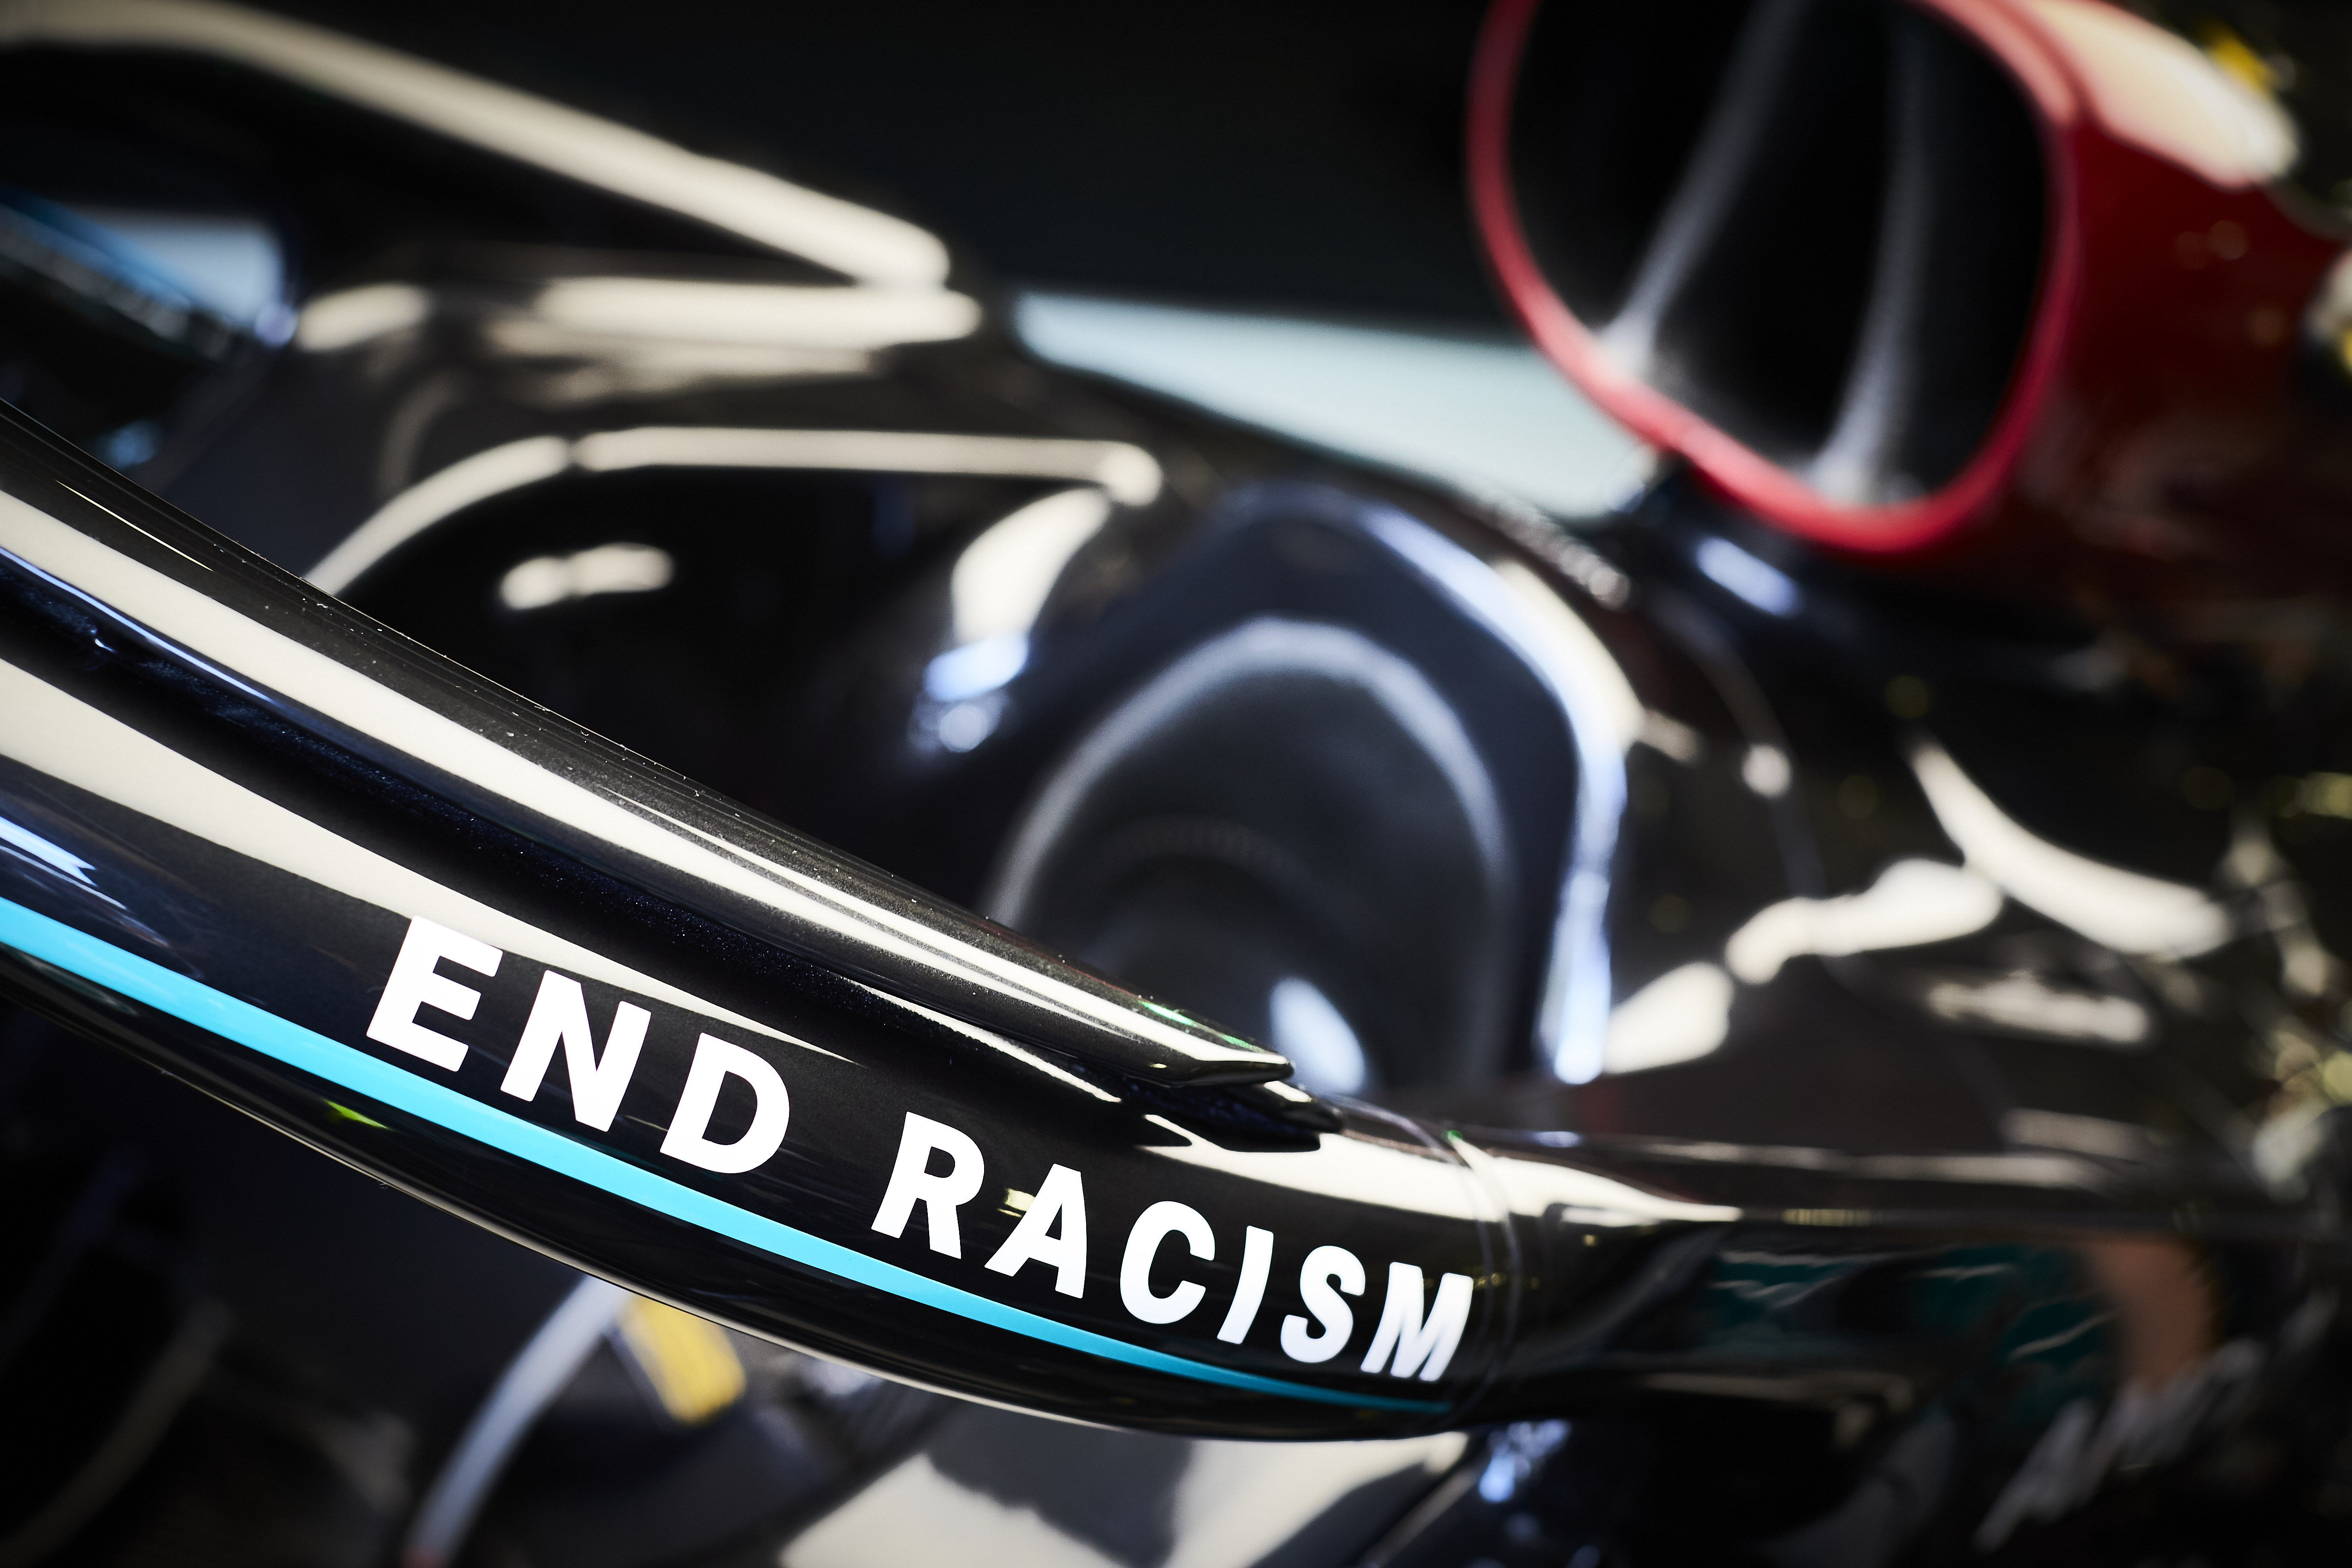 Mercedes end racism logo